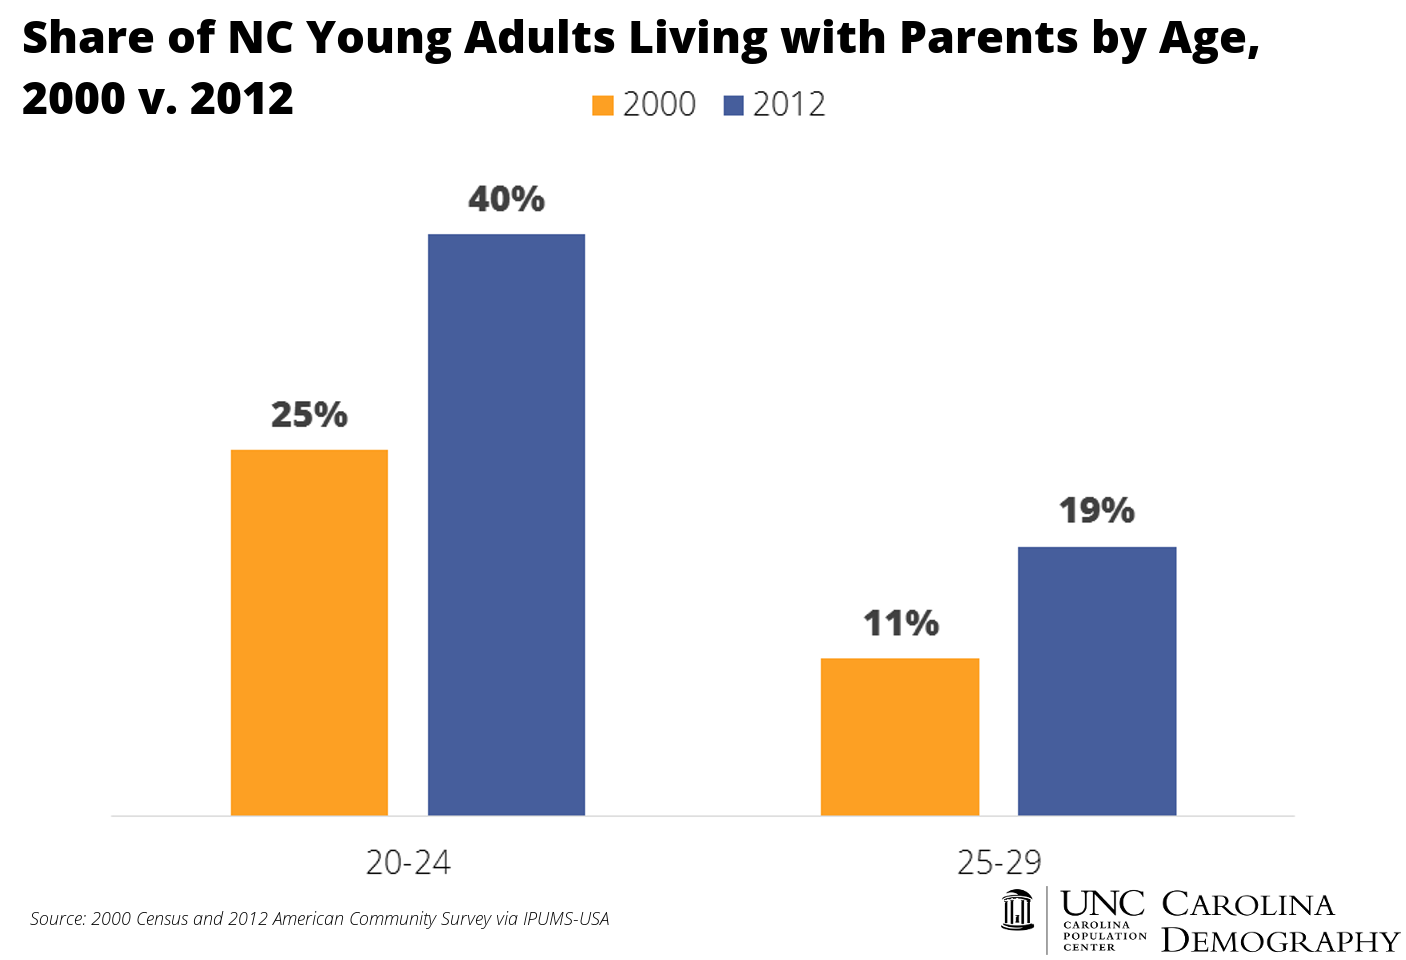 Share of NC Young Adults Living with Parents